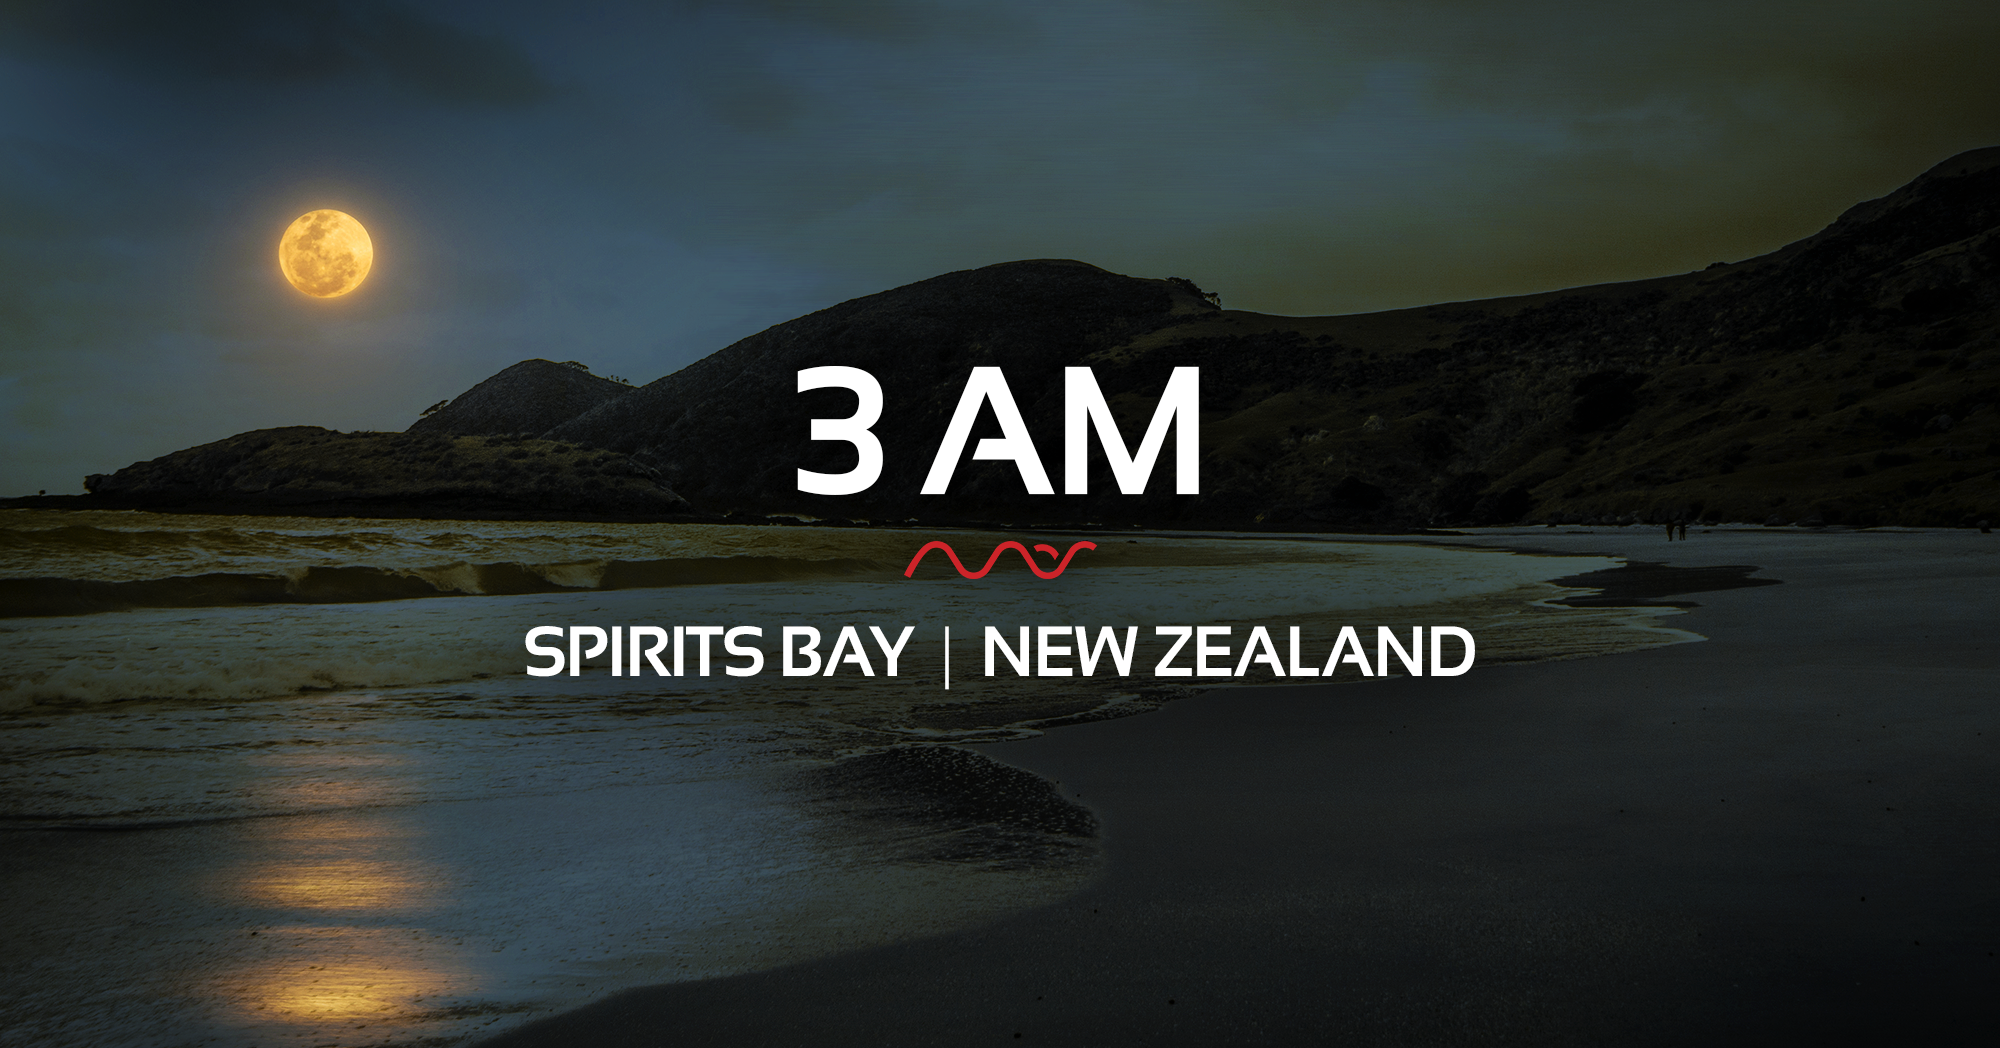 mas-sajady-3am-spirits-bay-new-zealand.png